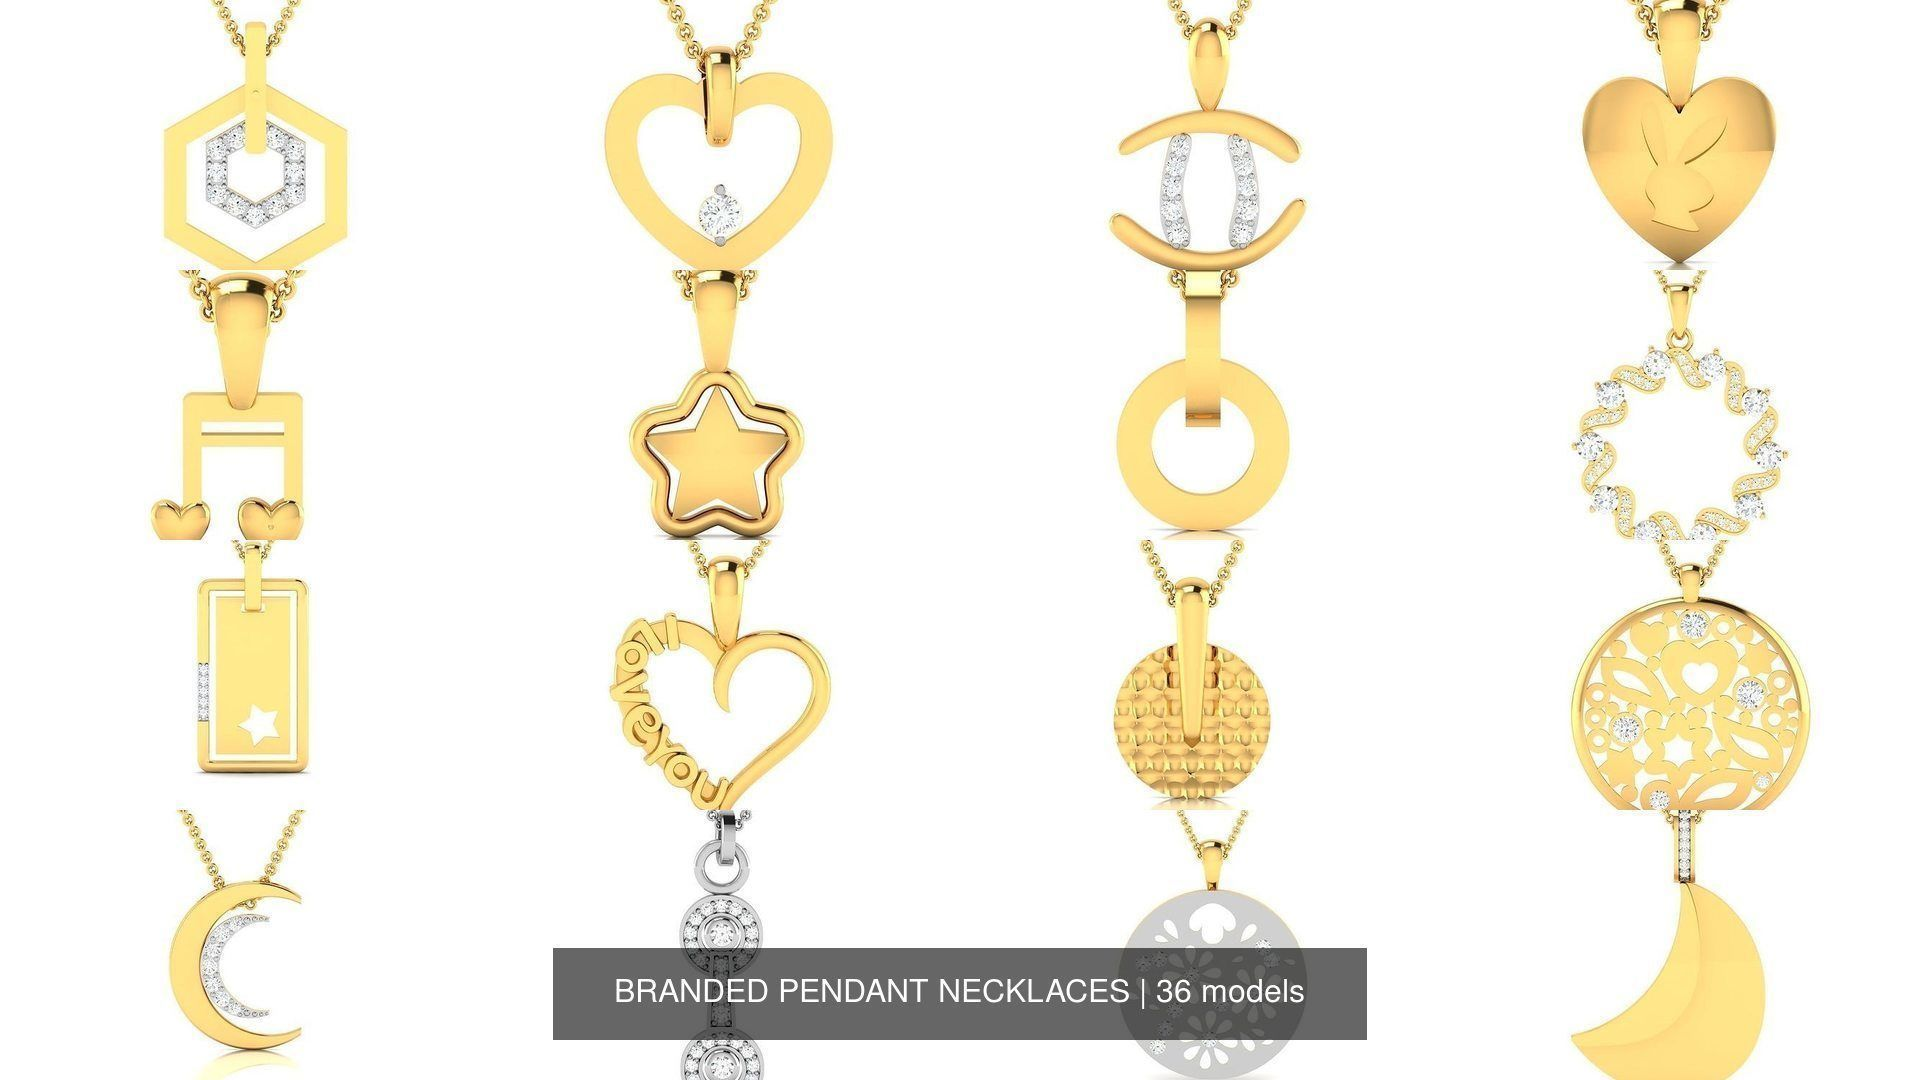 36 BRANDED PENDANT NECKLACES